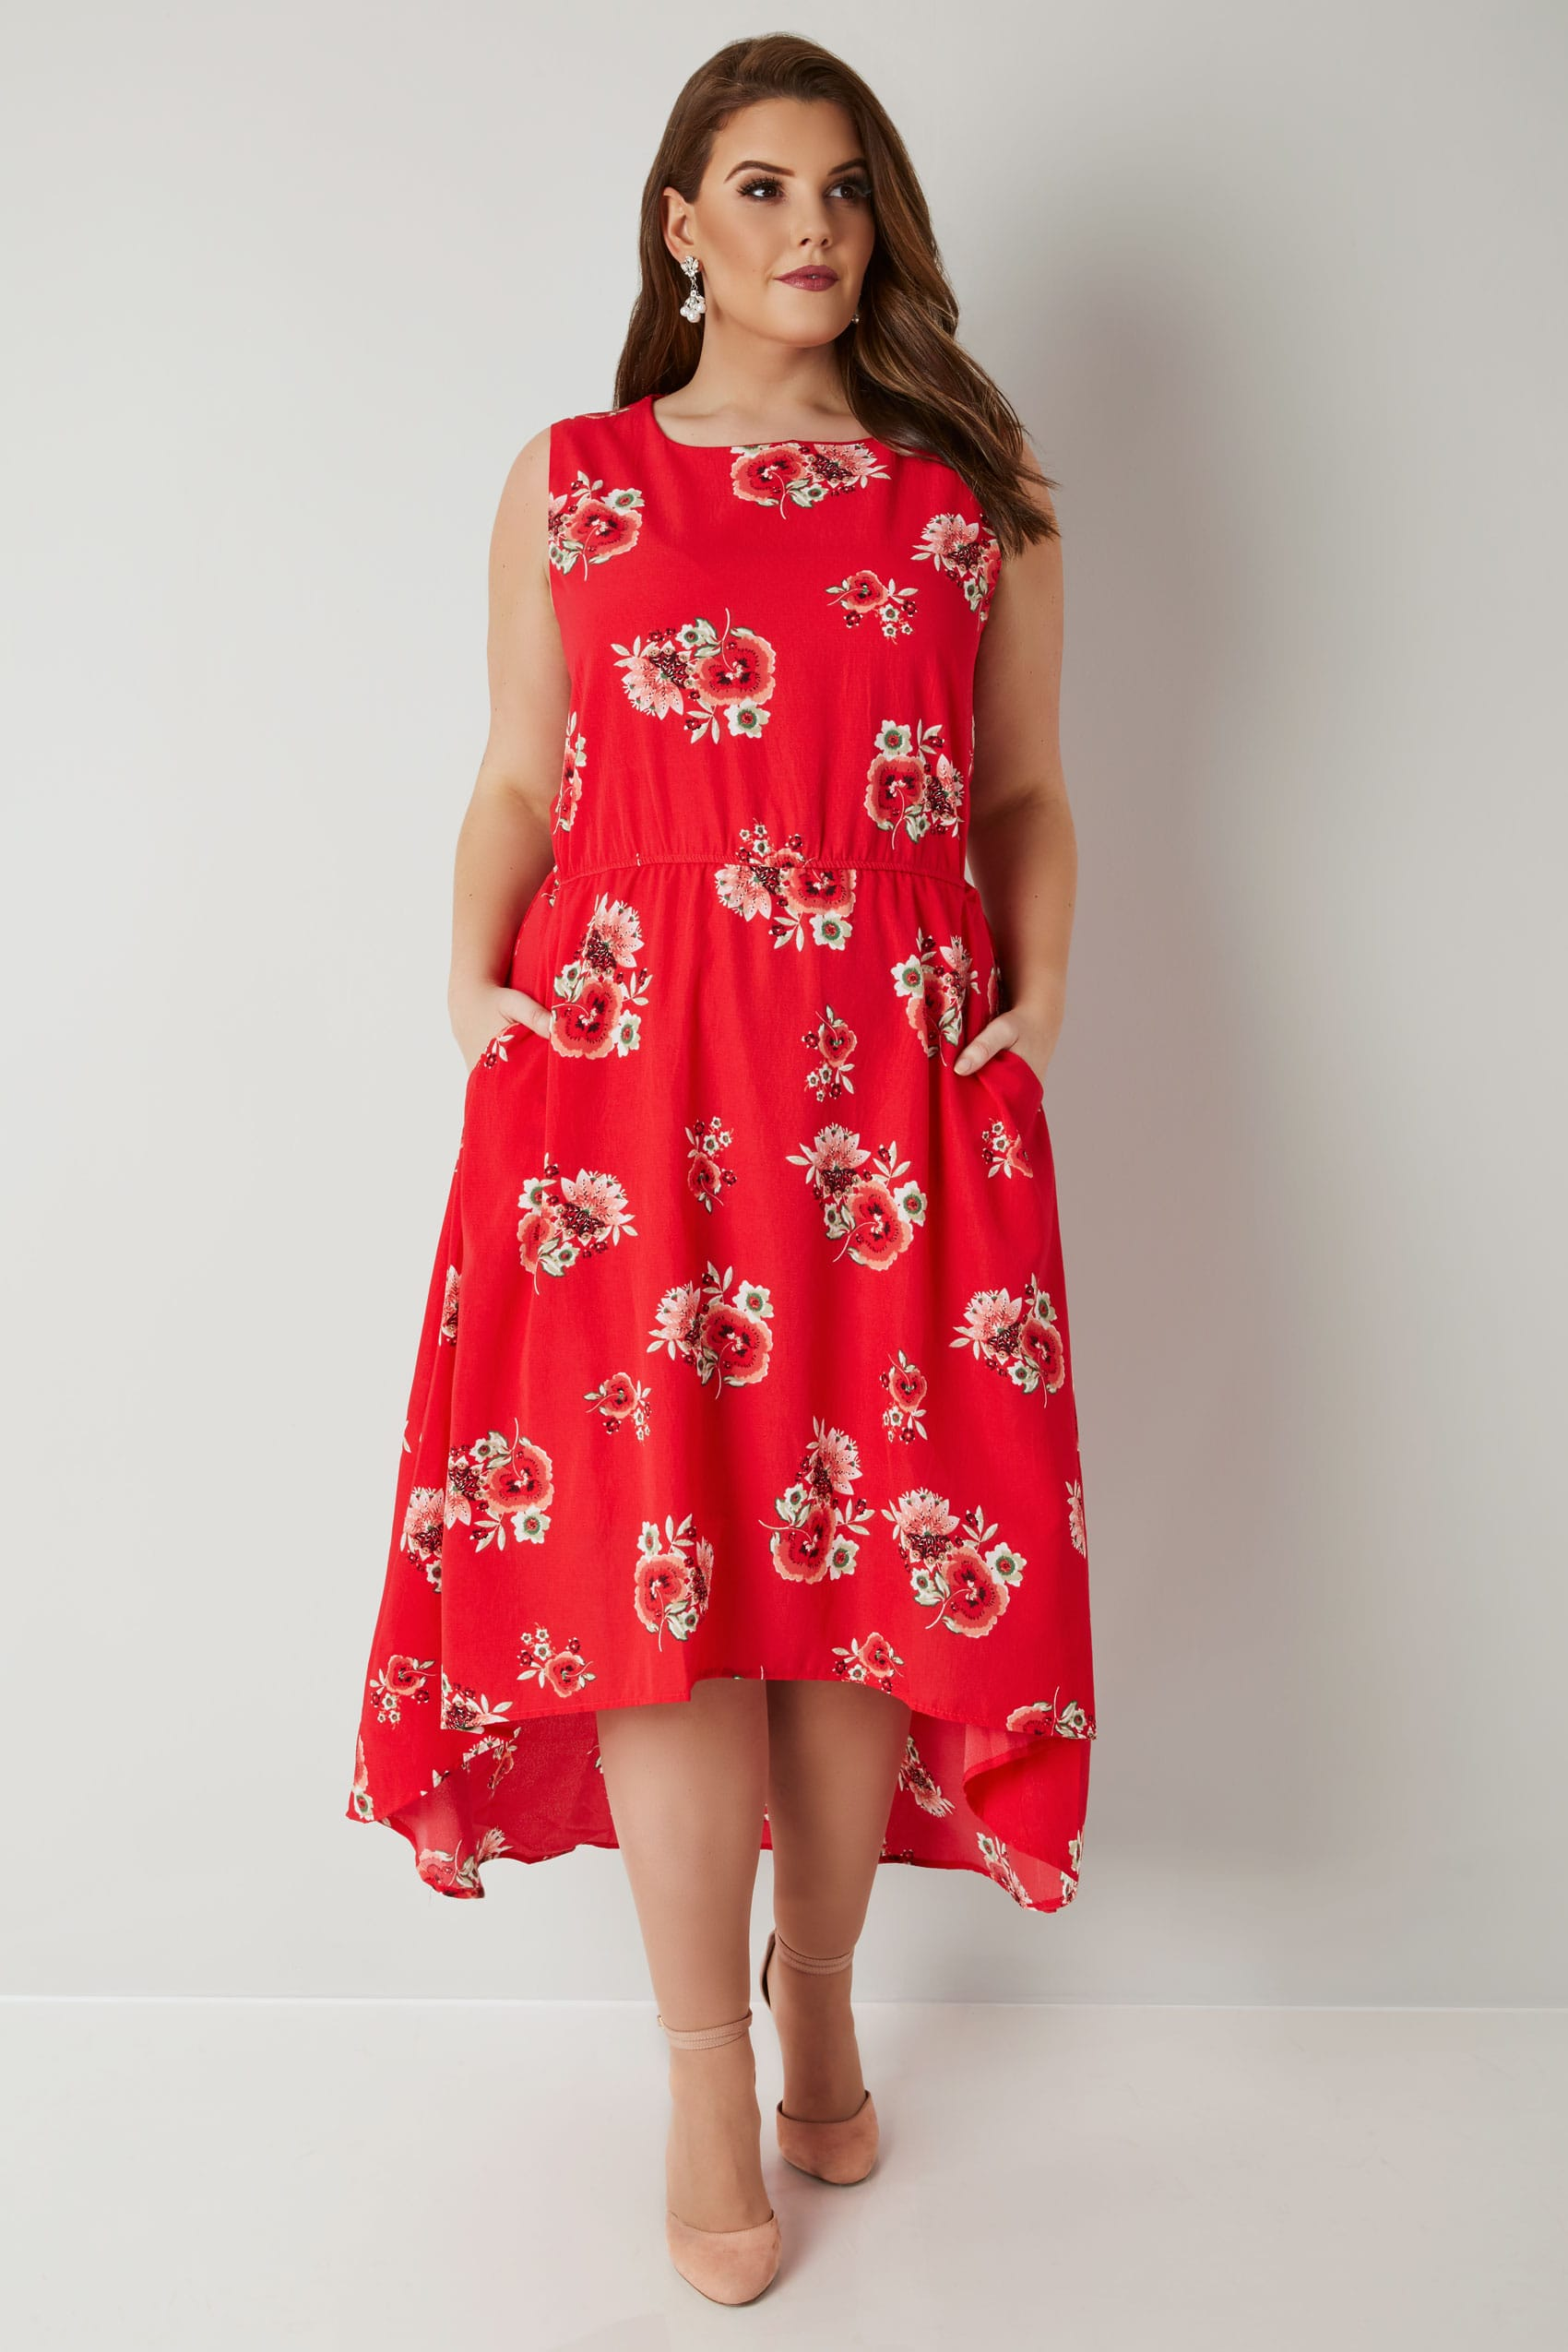 696688f8230 BLUE VANILLA CURVE Red Floral Print High Low Dress